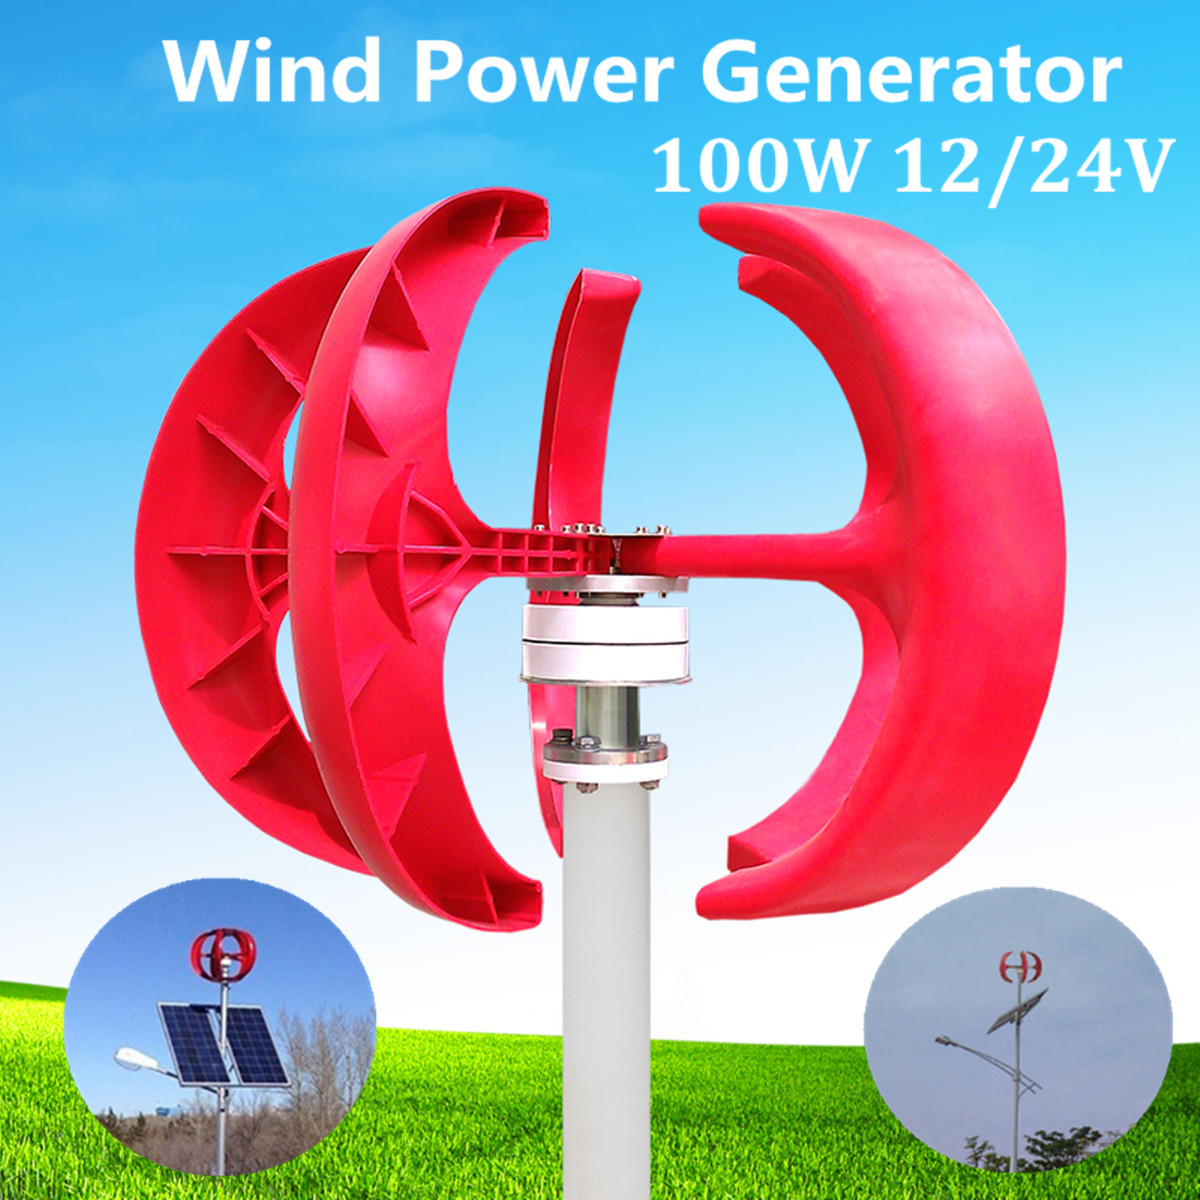 100W 12V 24 V 5 Blades Wind Turbine Generator Vertical Axis Wind Turbine Red Lantern Power VAWT House Boat Garden Energy Fiber vawt dc 100w vertical axis wind turbine generator